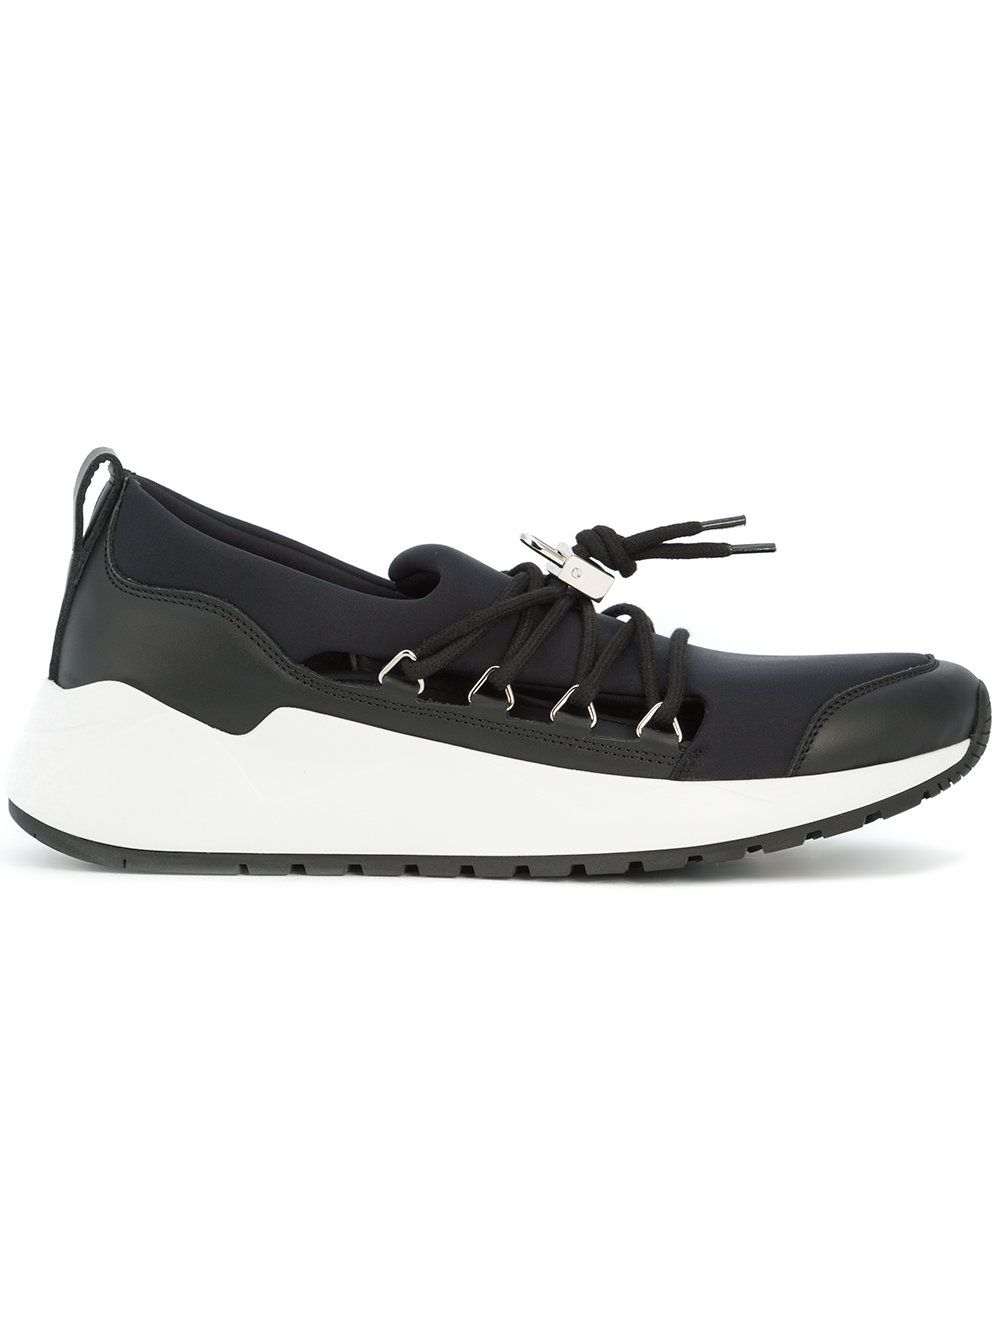 panelled lace-up sneakers - Blue Buscemi 6X3Xa